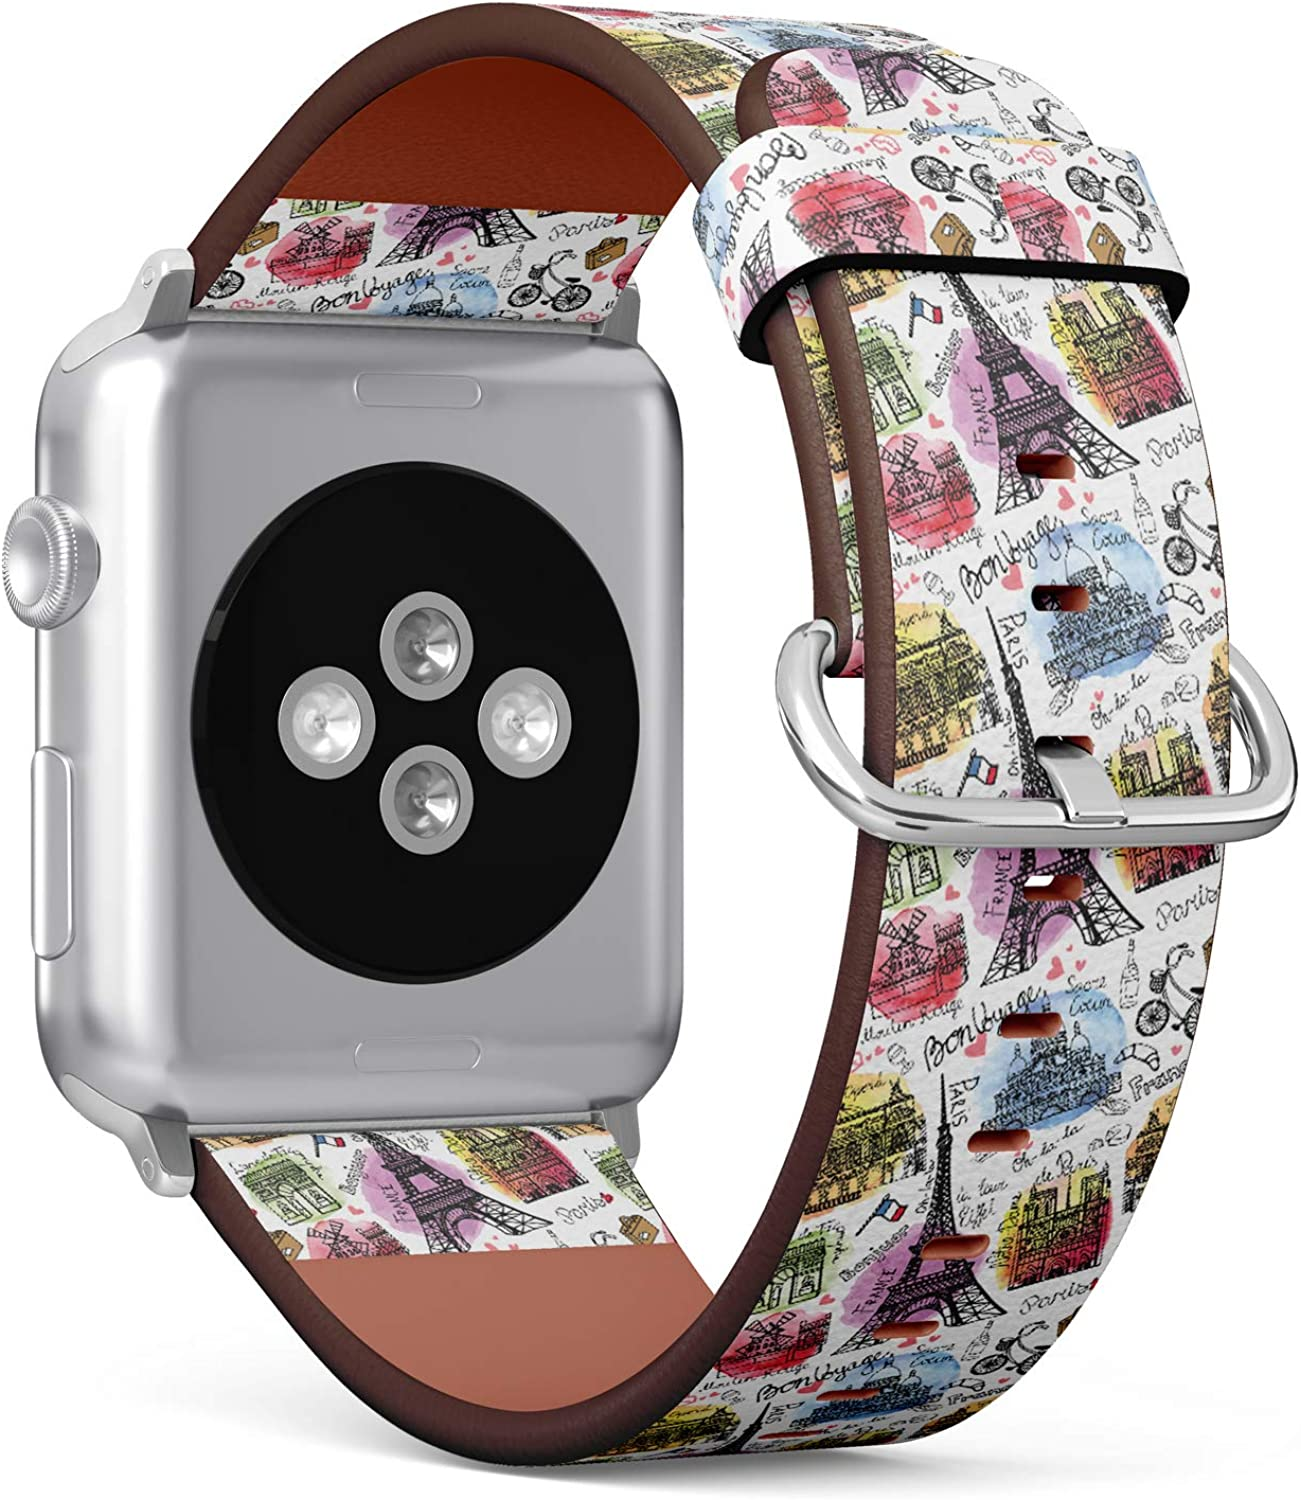 (Watercolor Vintage Doodle of Paris Landmark Notre Dame, Eiffel Tower) Patterned Leather Wristband Strap for Apple Watch Series 4/3/2/1 gen,Replacement for iWatch 42mm / 44mm Bands